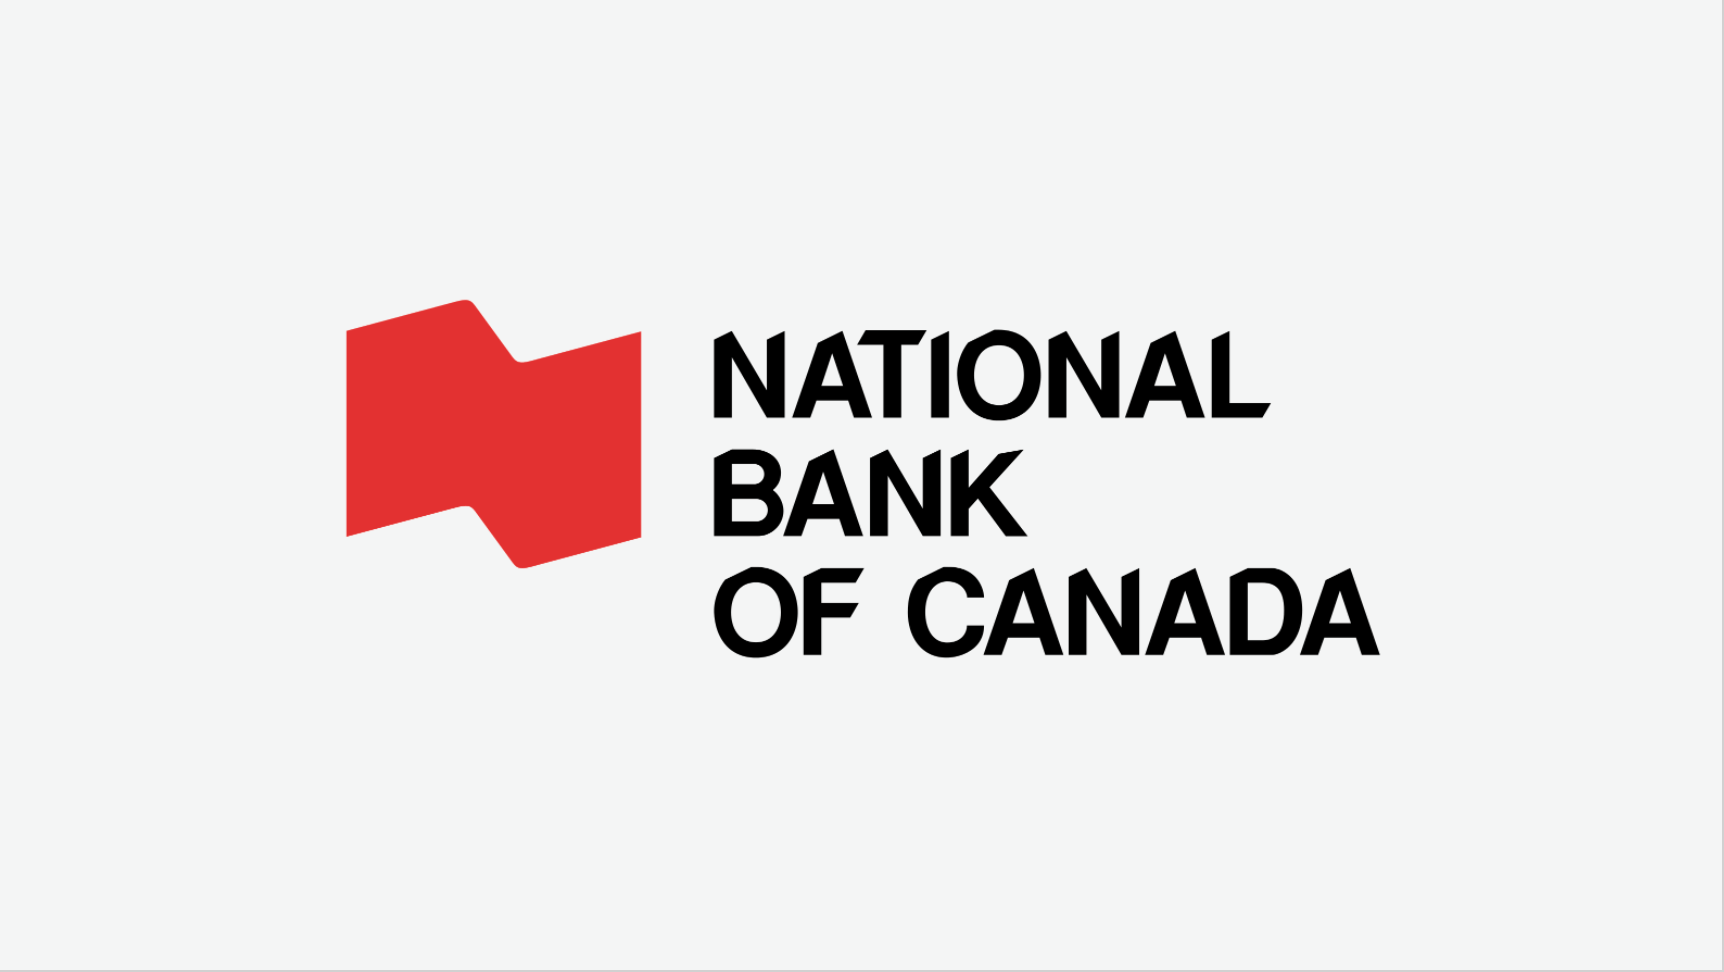 National Bank of Canada Tests $100 Million+ Blockchain